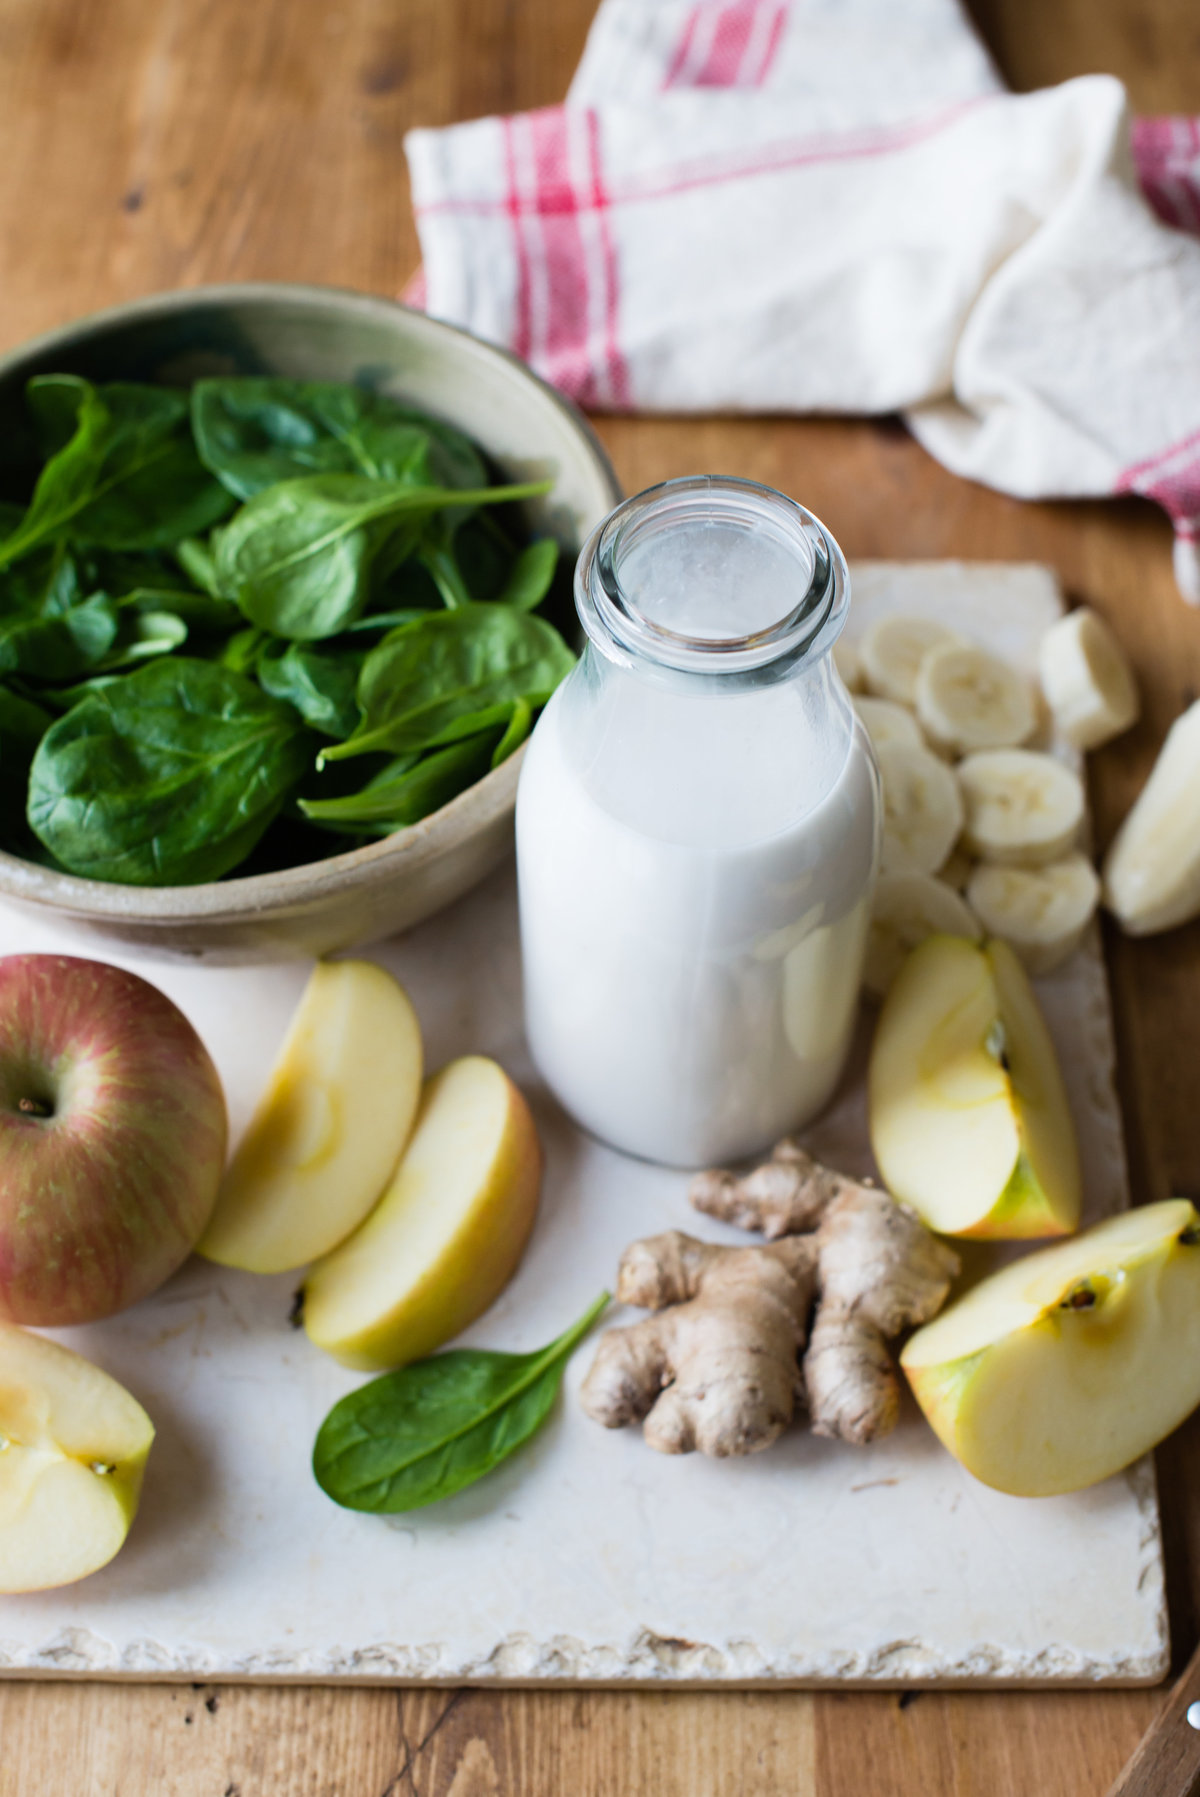 21-Day Cleanse with Plant-Based Recipes